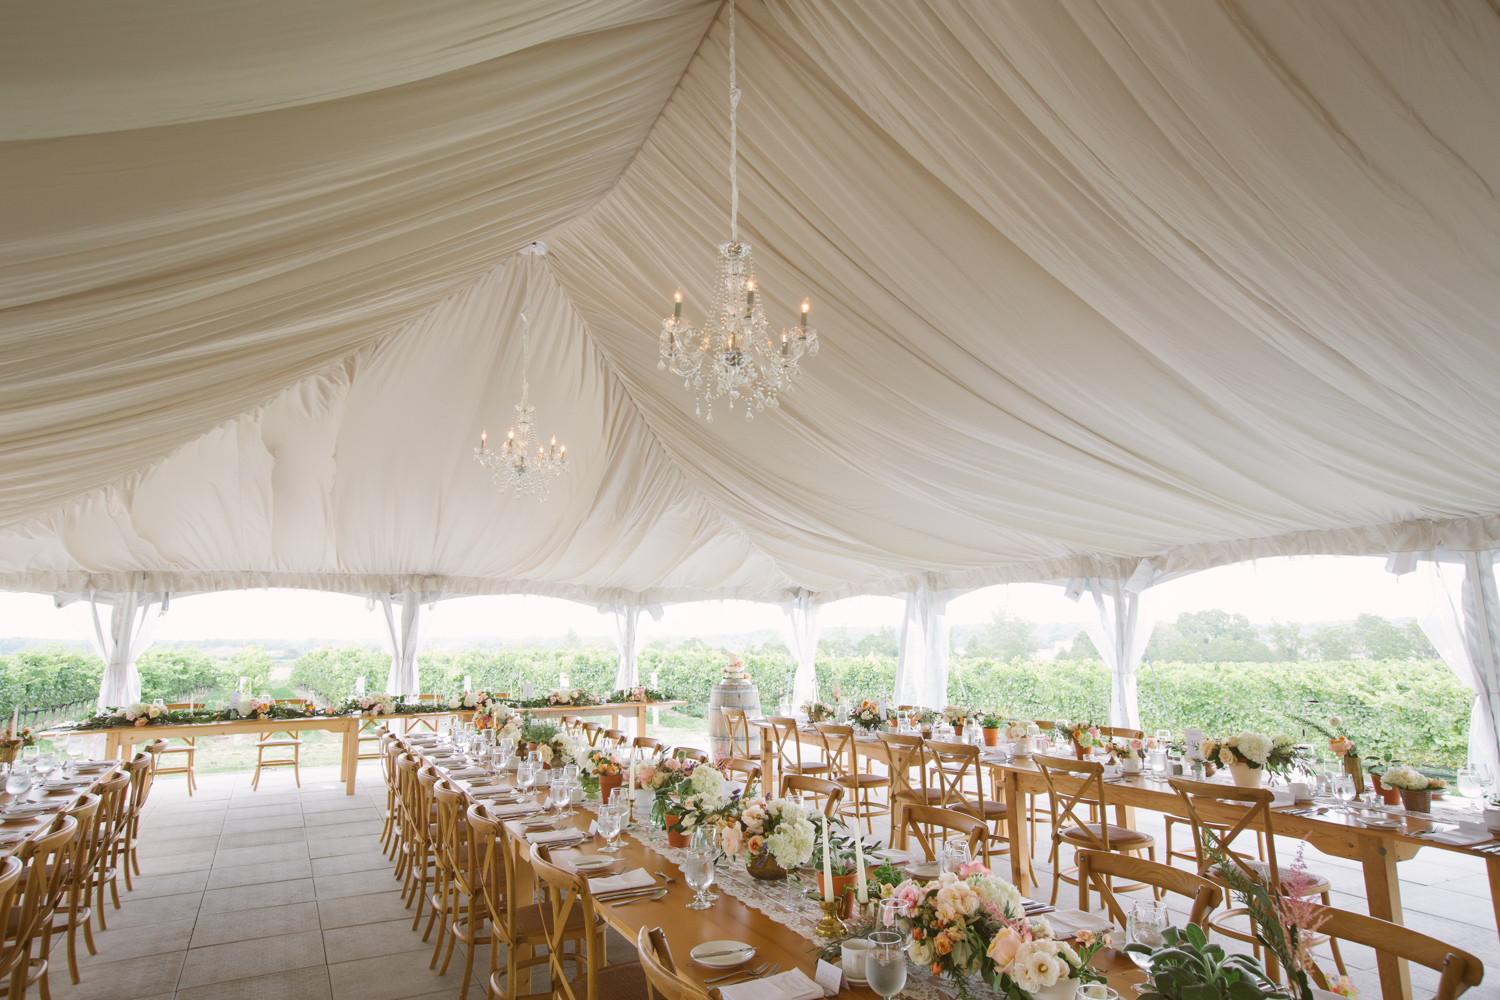 Draped tent harvest tables wedding reception